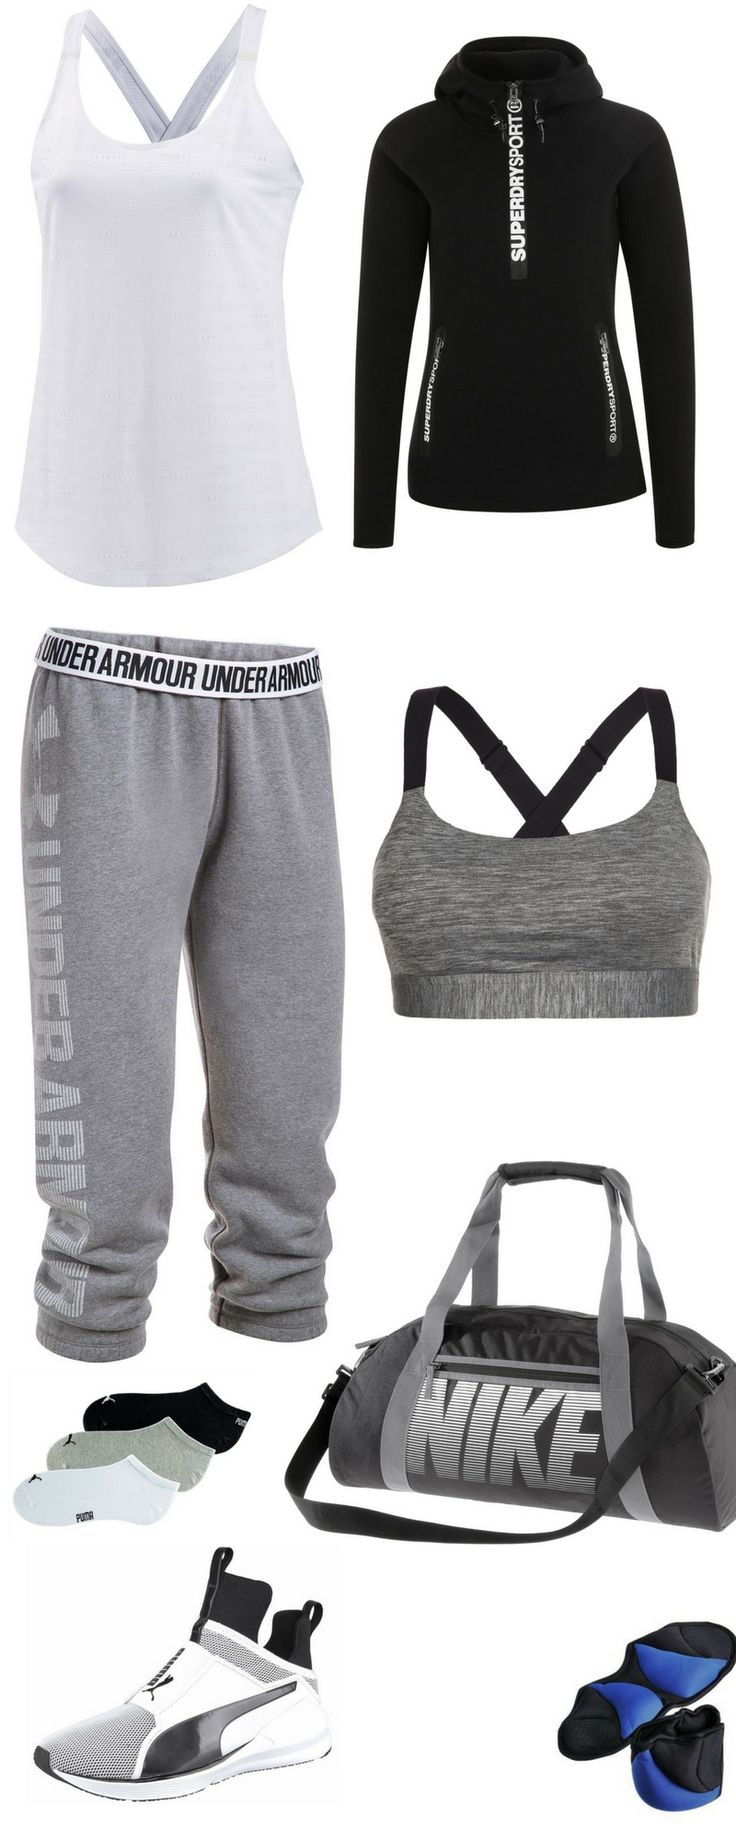 the 25 best sport clothing ideas on pinterest nike sweatpants sweatpants and nike clothes. Black Bedroom Furniture Sets. Home Design Ideas